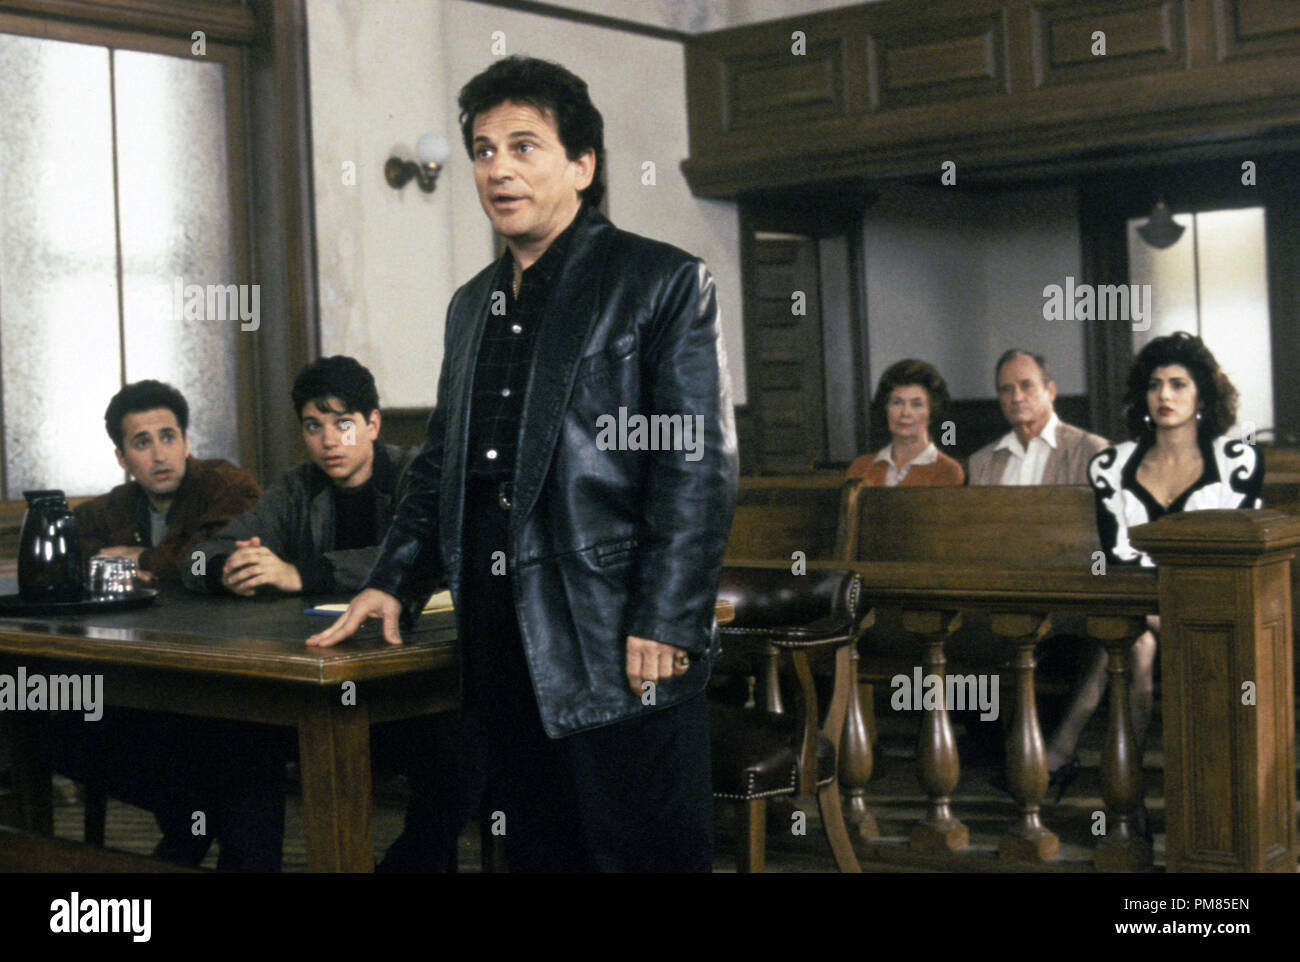 Film still or Publicity still from 'My Cousin Vinny' Mitchell Whitfield, Ralph Macchio, Joe Pesci, Marisa Tomei © 1992 20th Century Fox Photo Credit: Ben Glass All Rights Reserved   File Reference # 31487_167THA  For Editorial Use Only - Stock Image